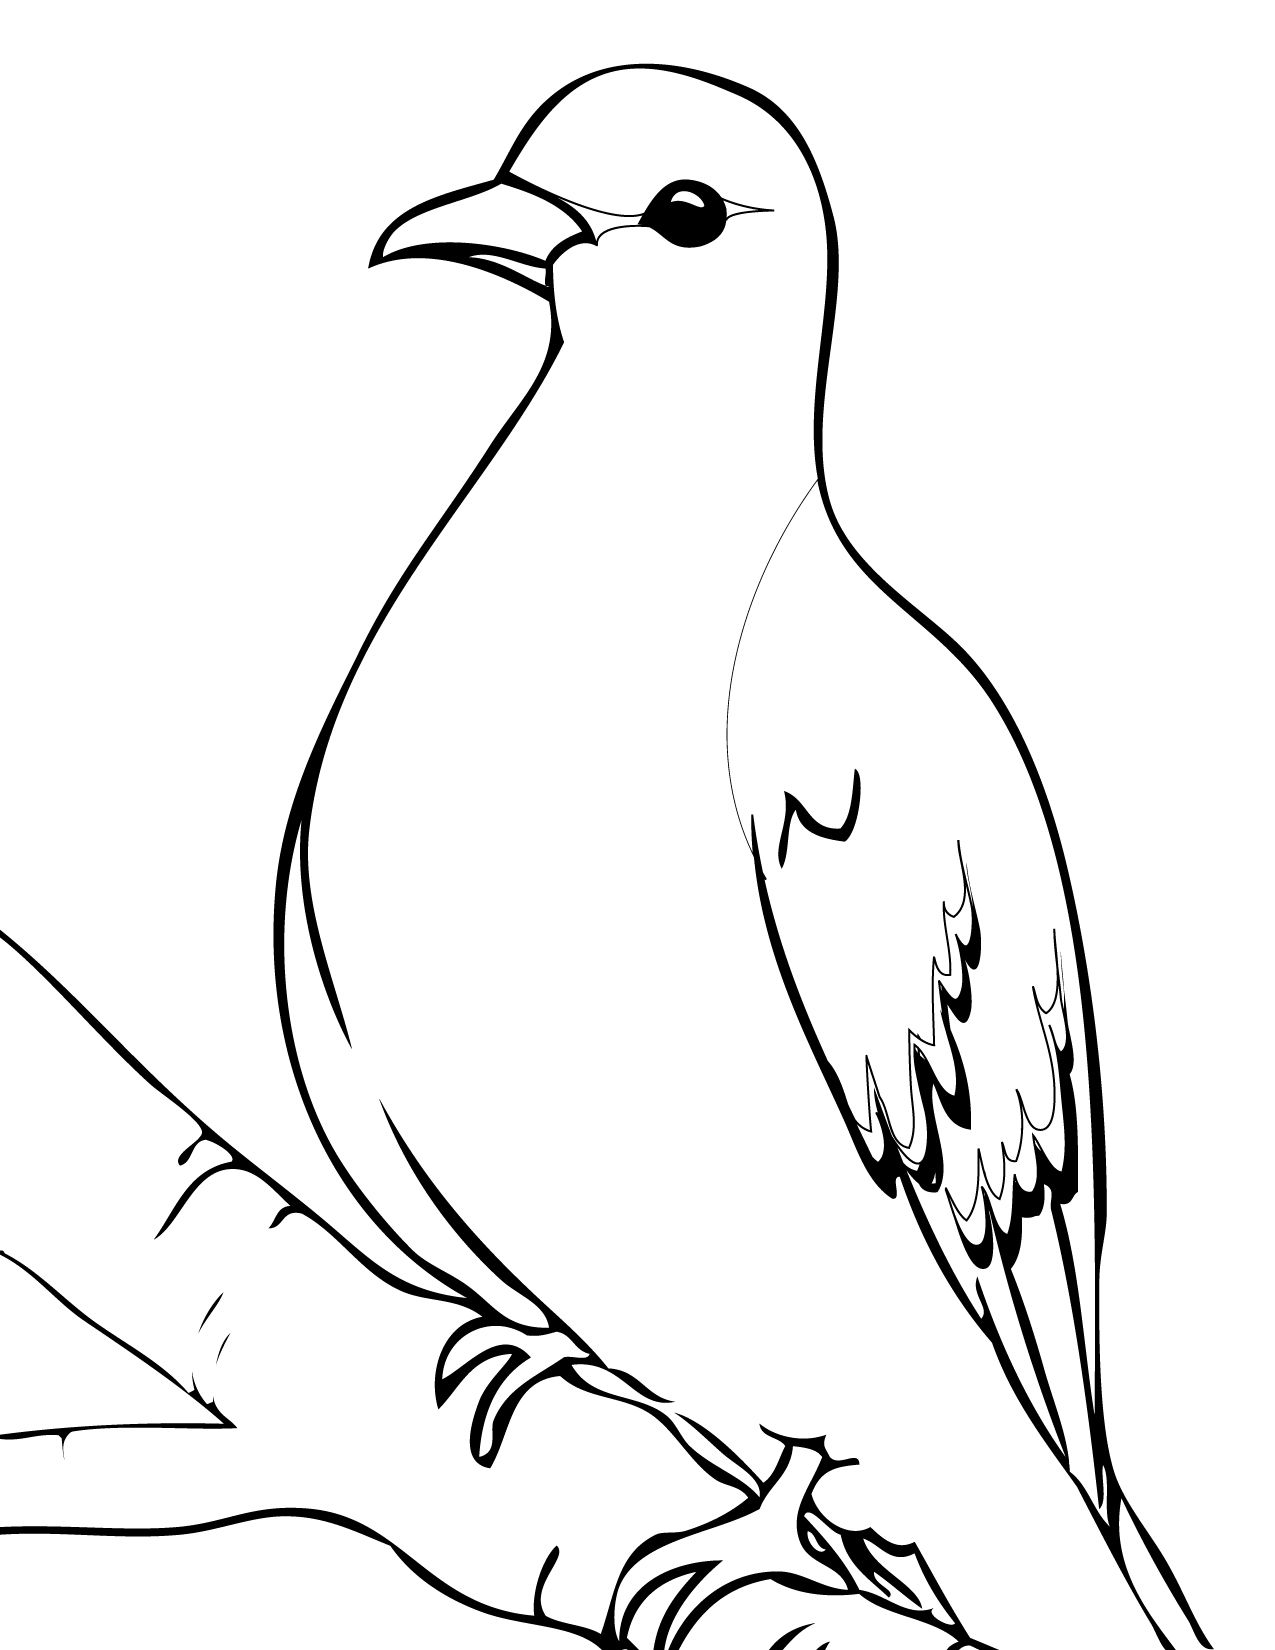 Pin By Calene Luczo On Reference Photos Bird Coloring Pages